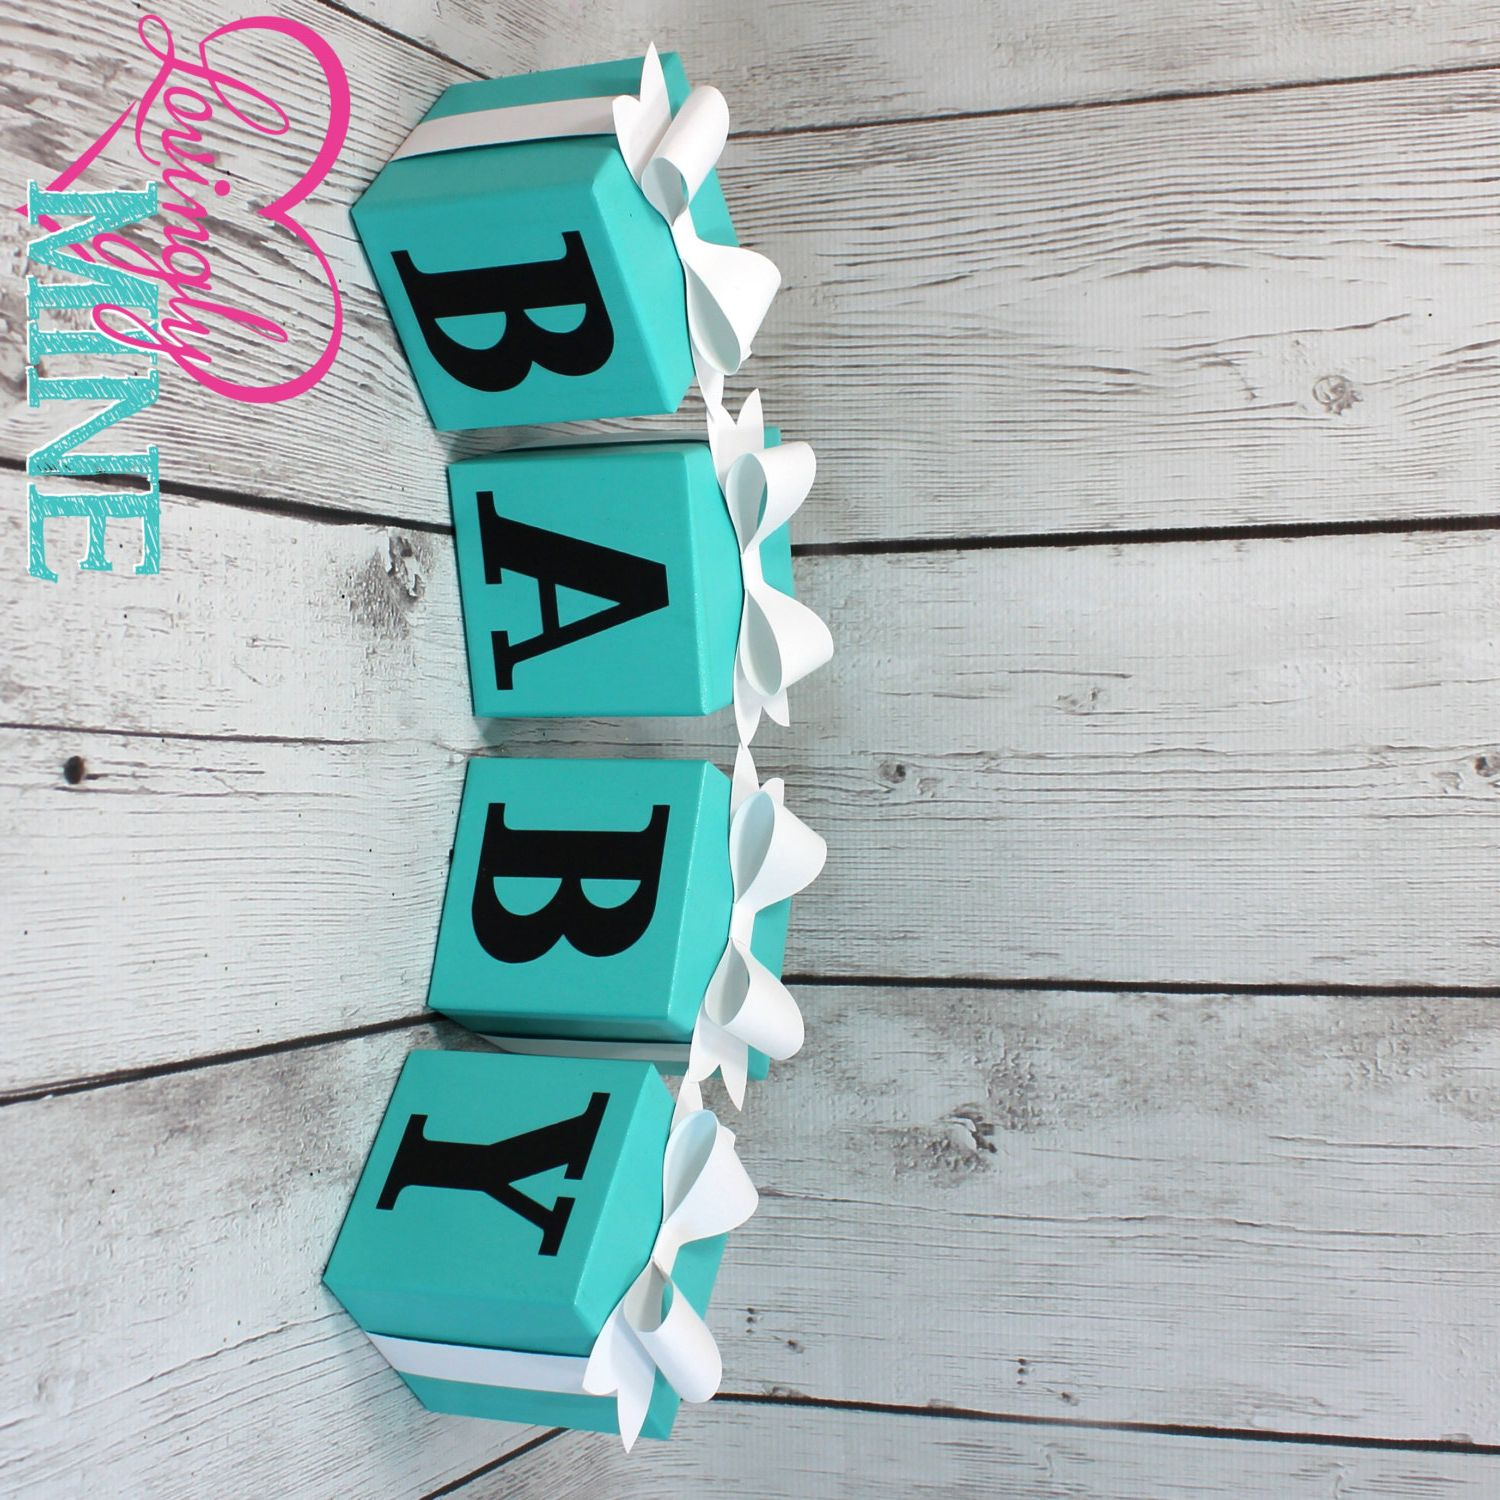 Baby Block Letters In Light Teal Aqua Robbins Egg Blue With White